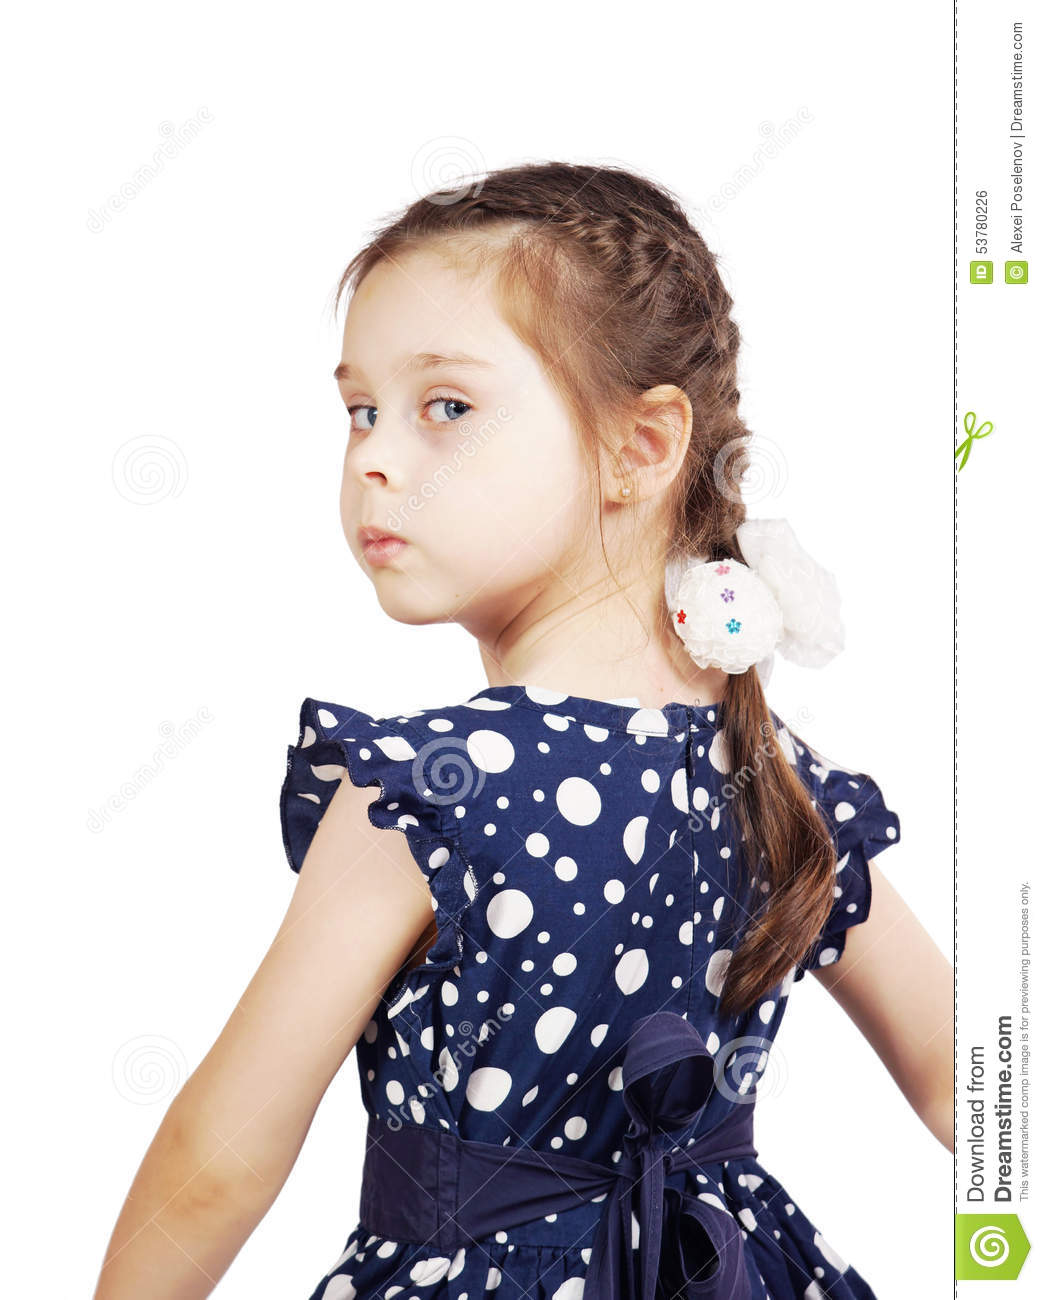 Pretty cute young girl wearing the dark blue dress looking Cute teenage girls pics